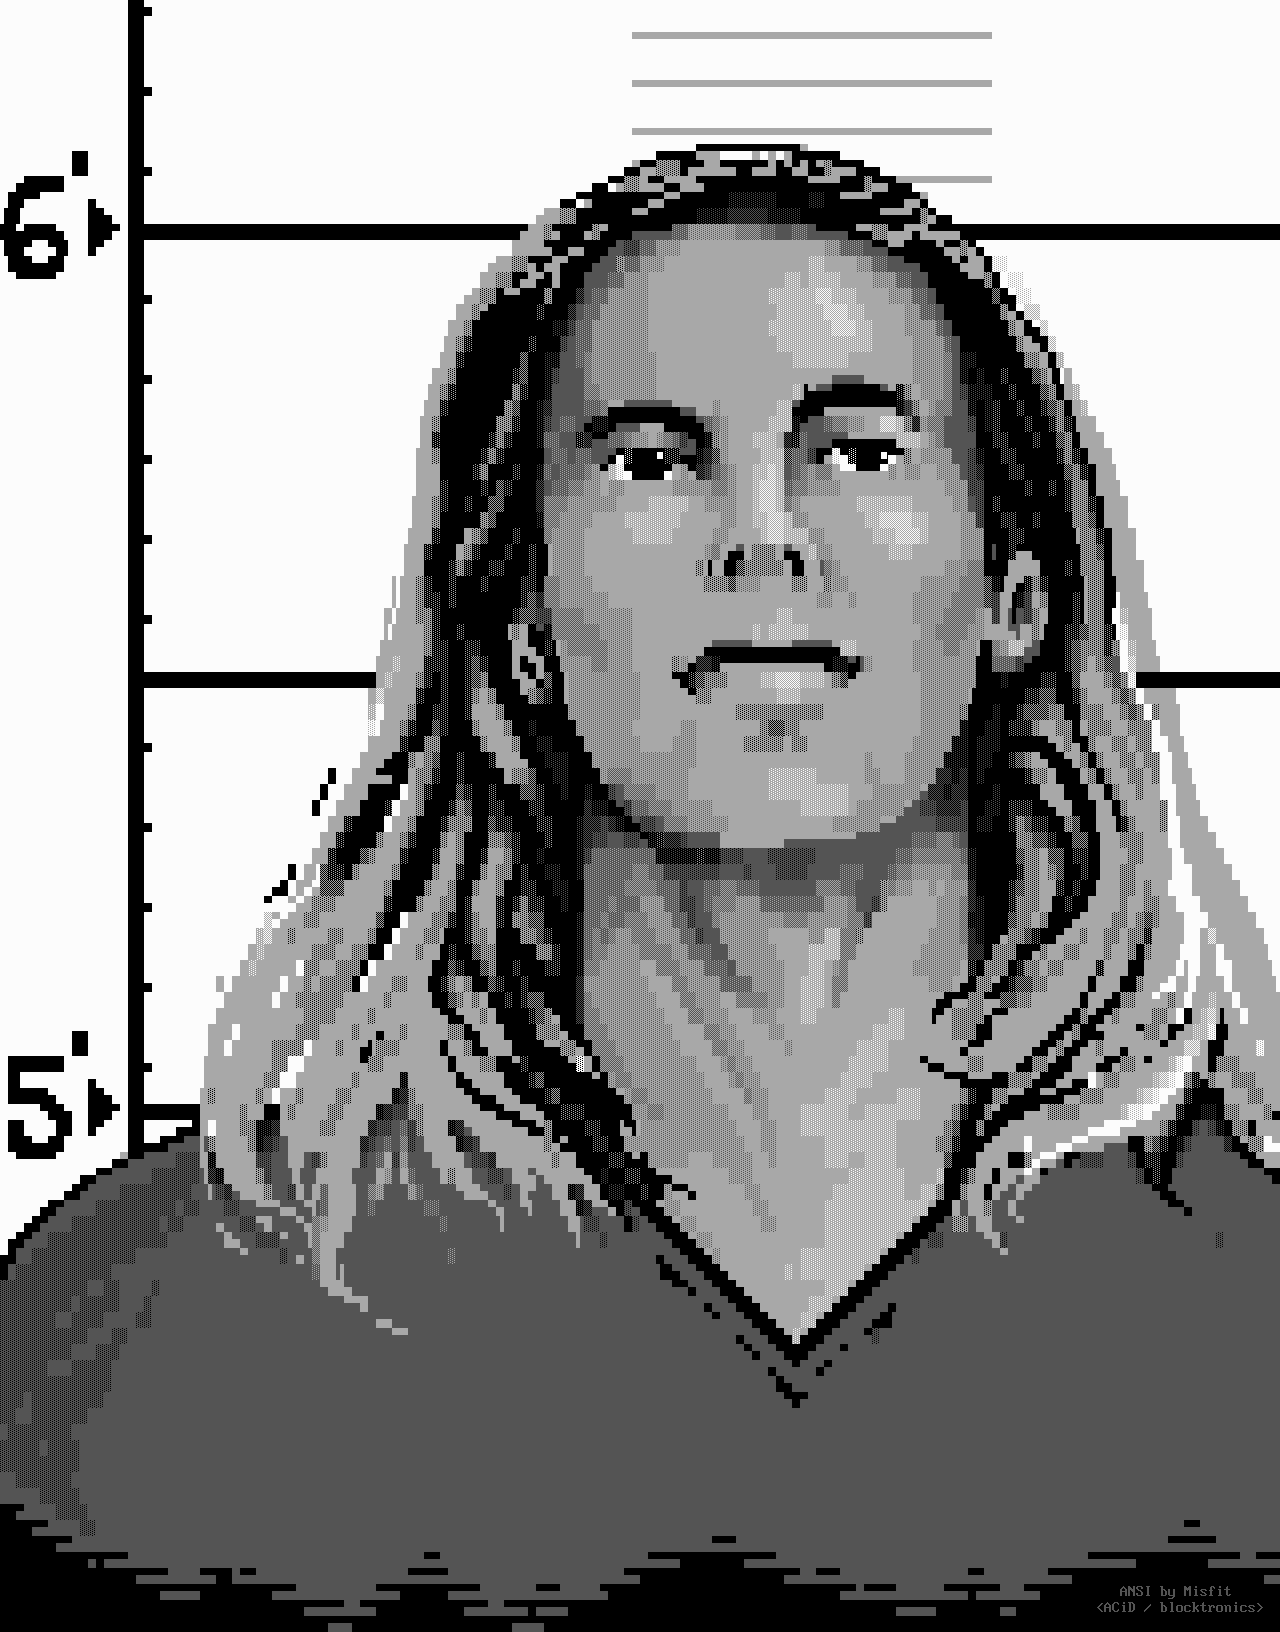 mugshot, face, man, hair, long hair, white, gray, grey, grayscale, misfit